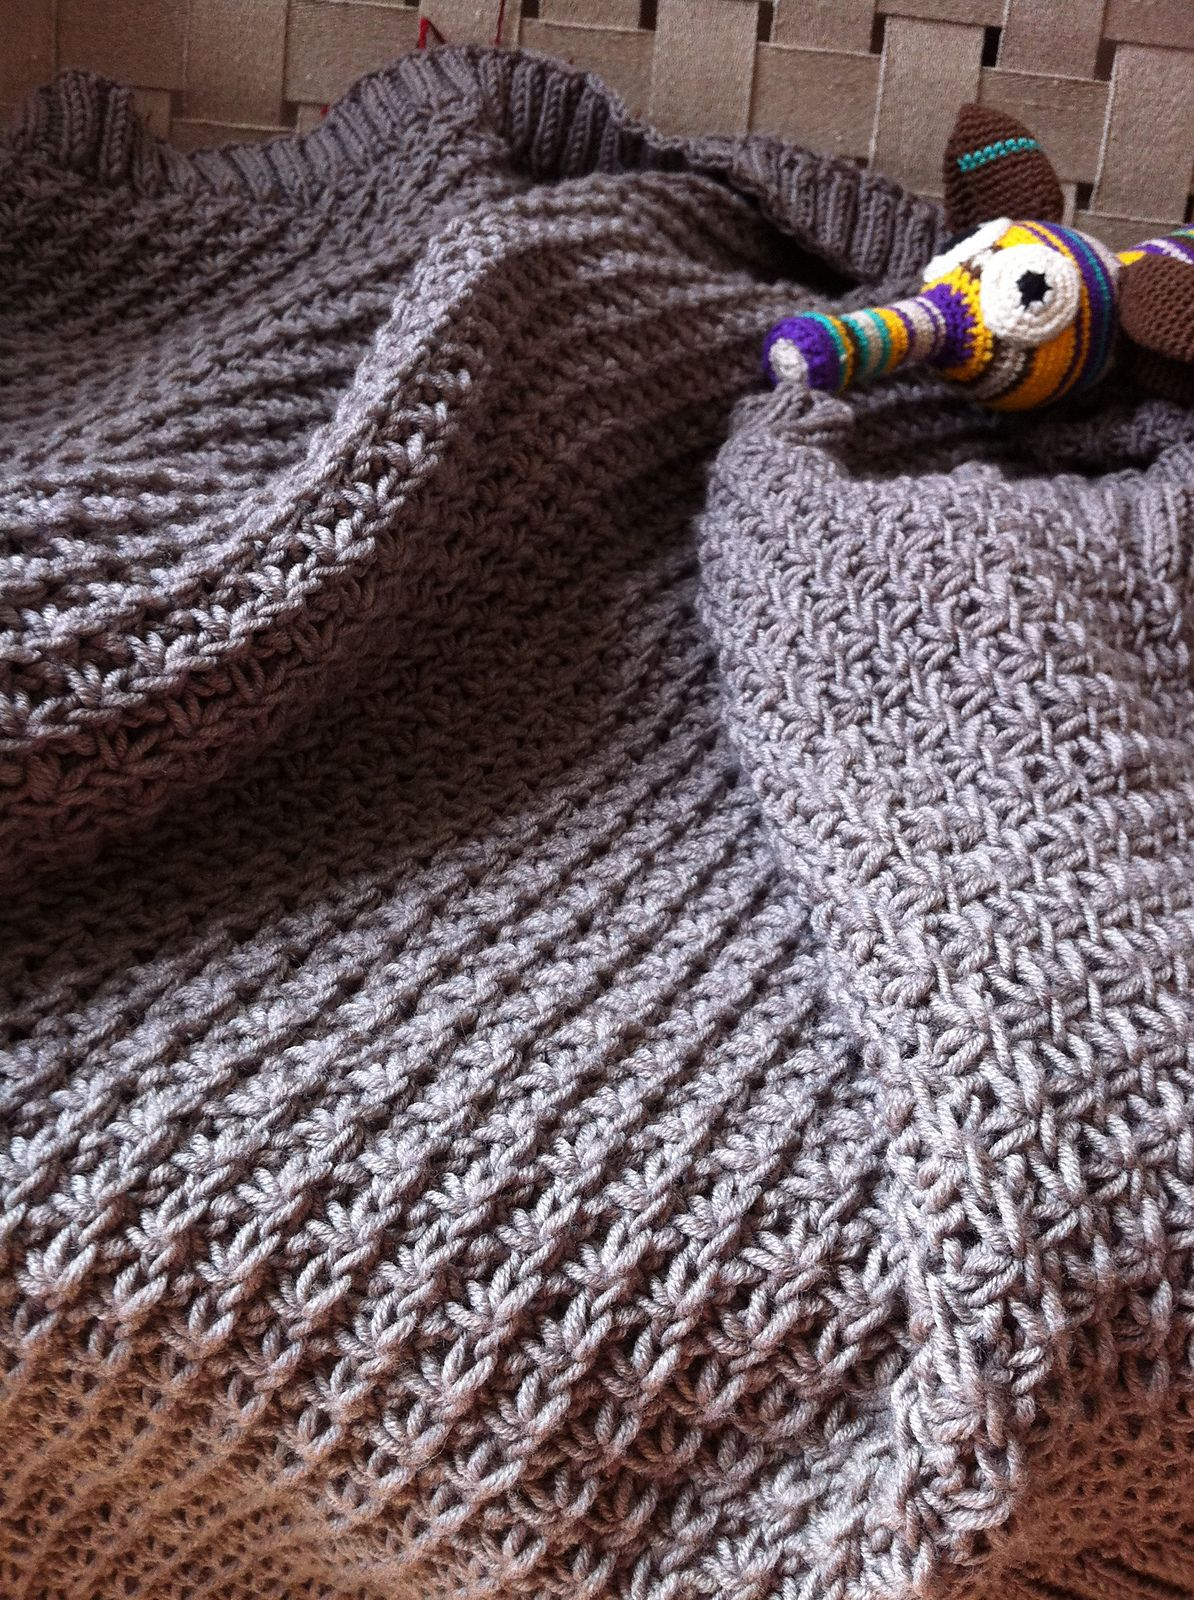 840f456e4 Baby Blanket In Daisy Stitch By Marie-Louise Hauge - Free Knitted ...